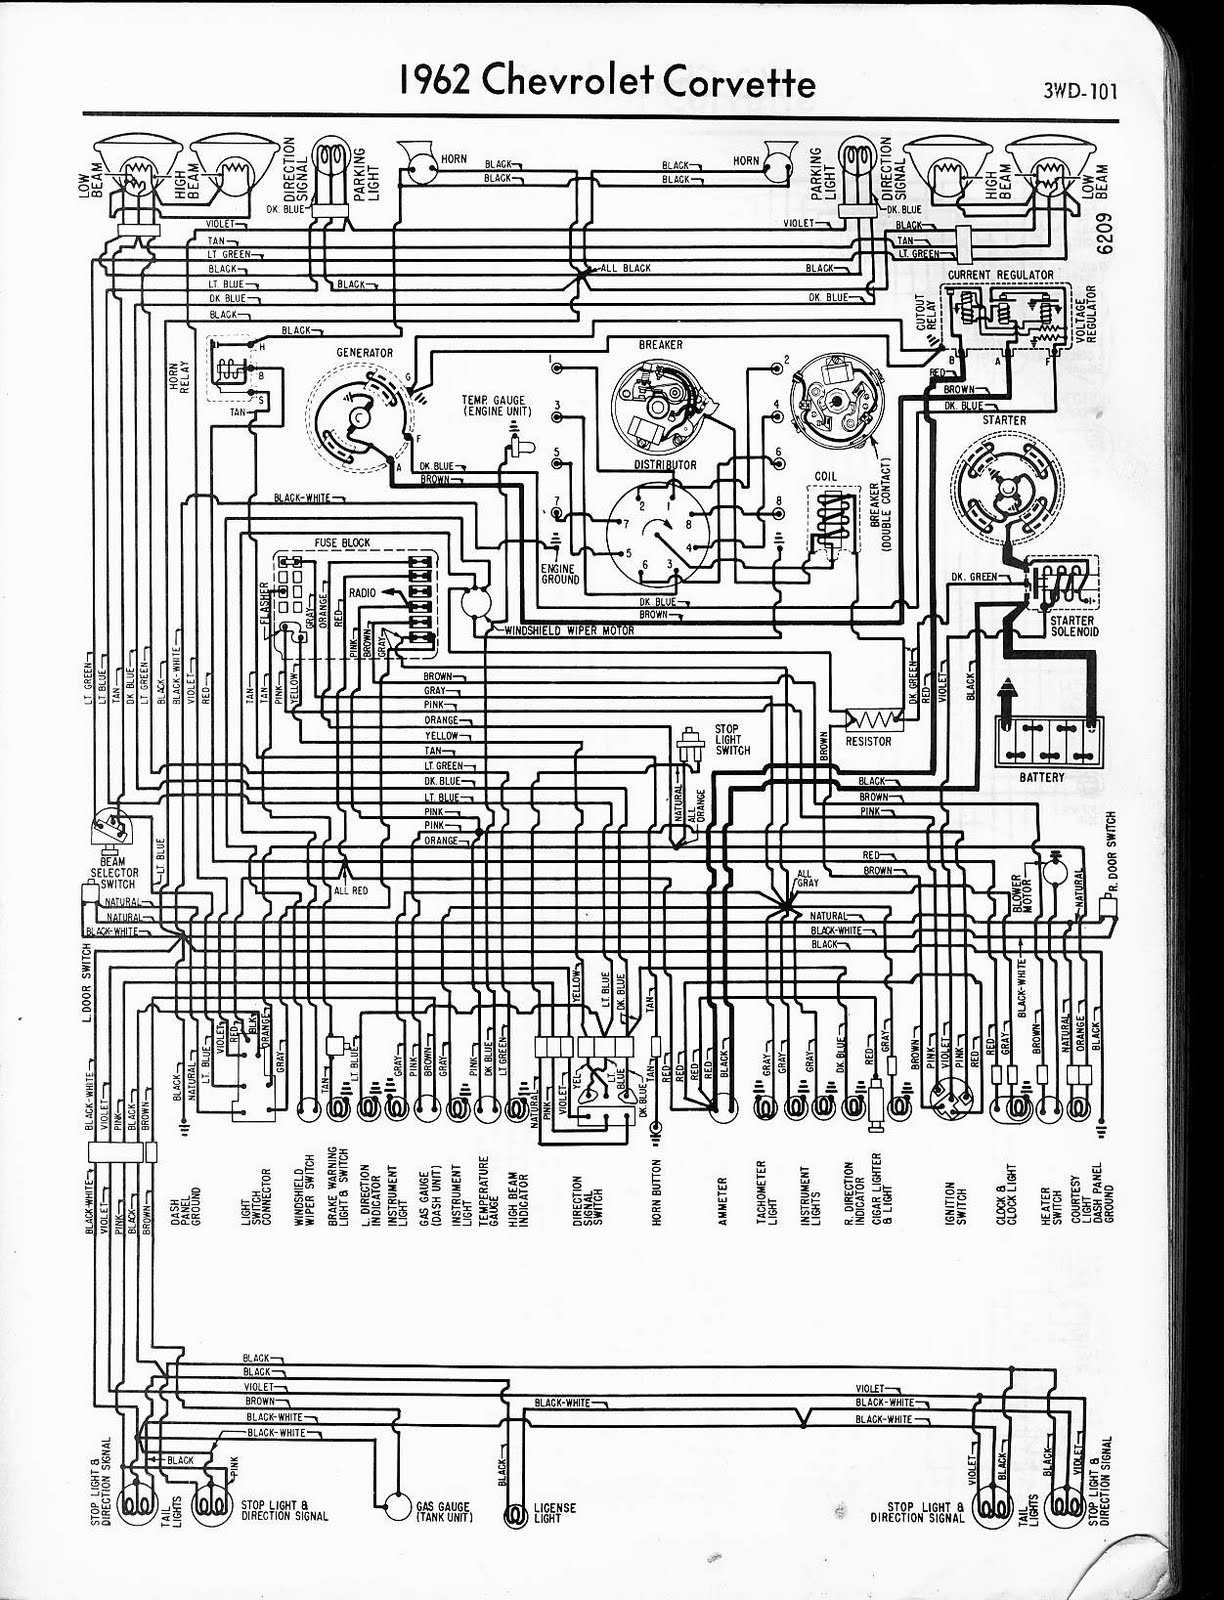 Pontiac Firebird Fuse Box 86 Diagram Wiring Library Free Auto 1962 Chevrolet Corvette 2000 1988